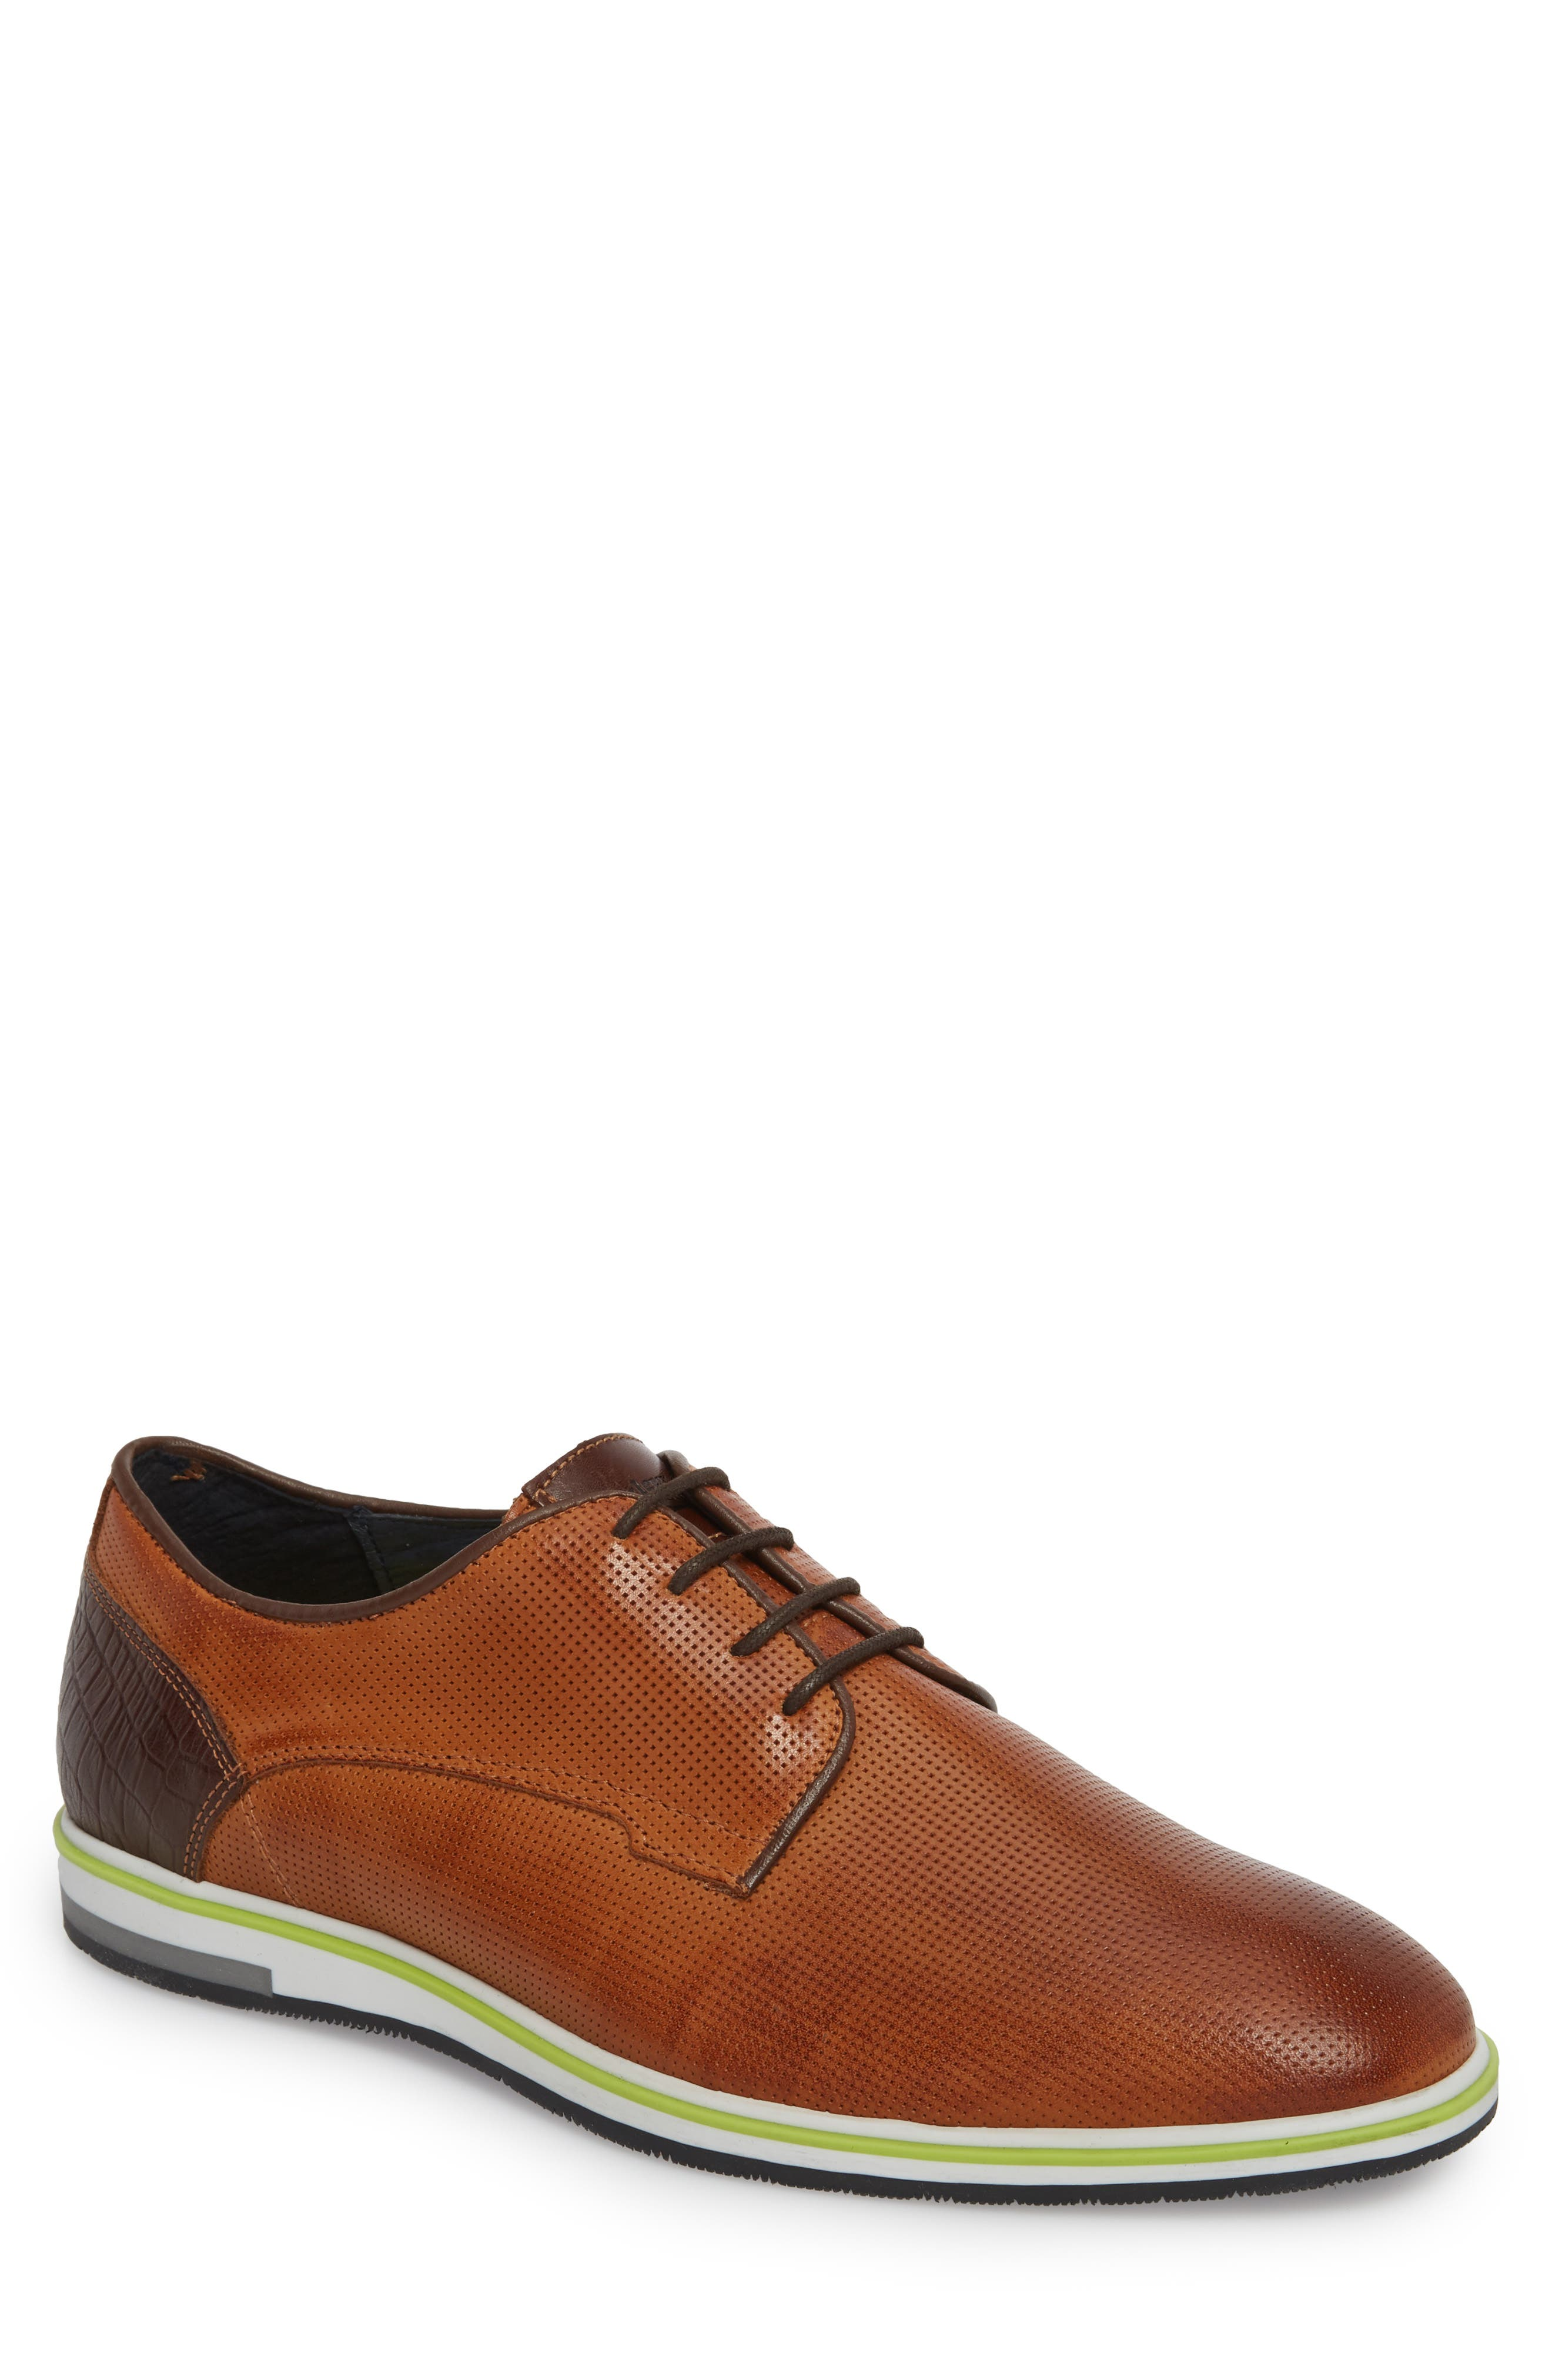 Cycleur De Luxe Plus Casual Perforated Derby (Men)